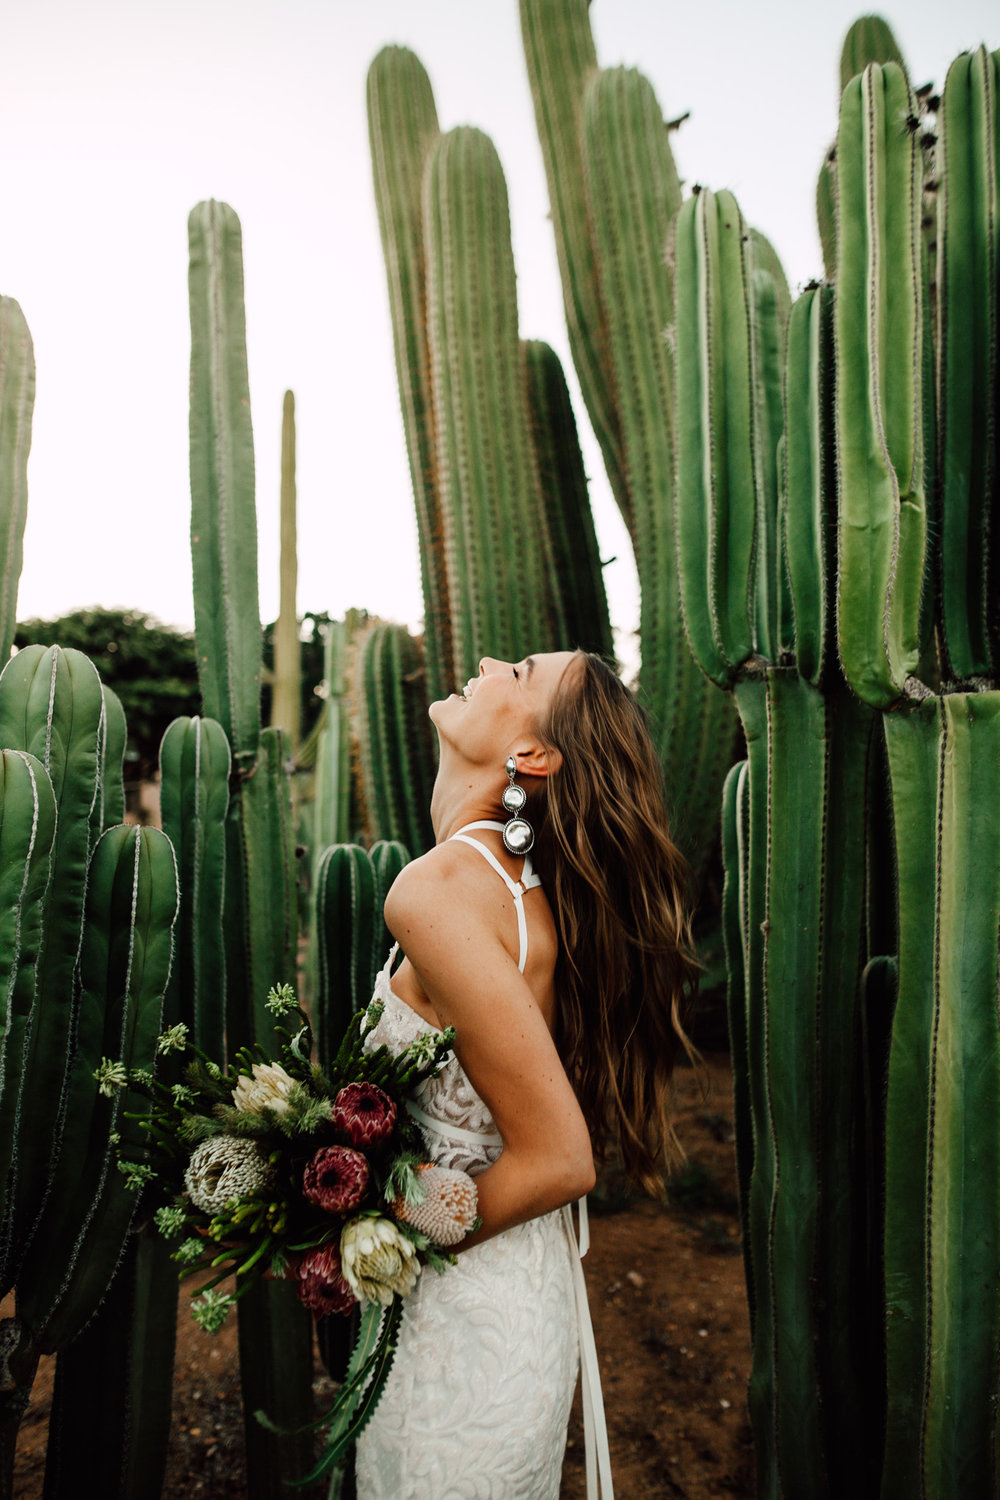 Cape-Town-Pia-Anna-Christian-Wedding-Photography-South-Africa-Bride-Cactus-16.jpg